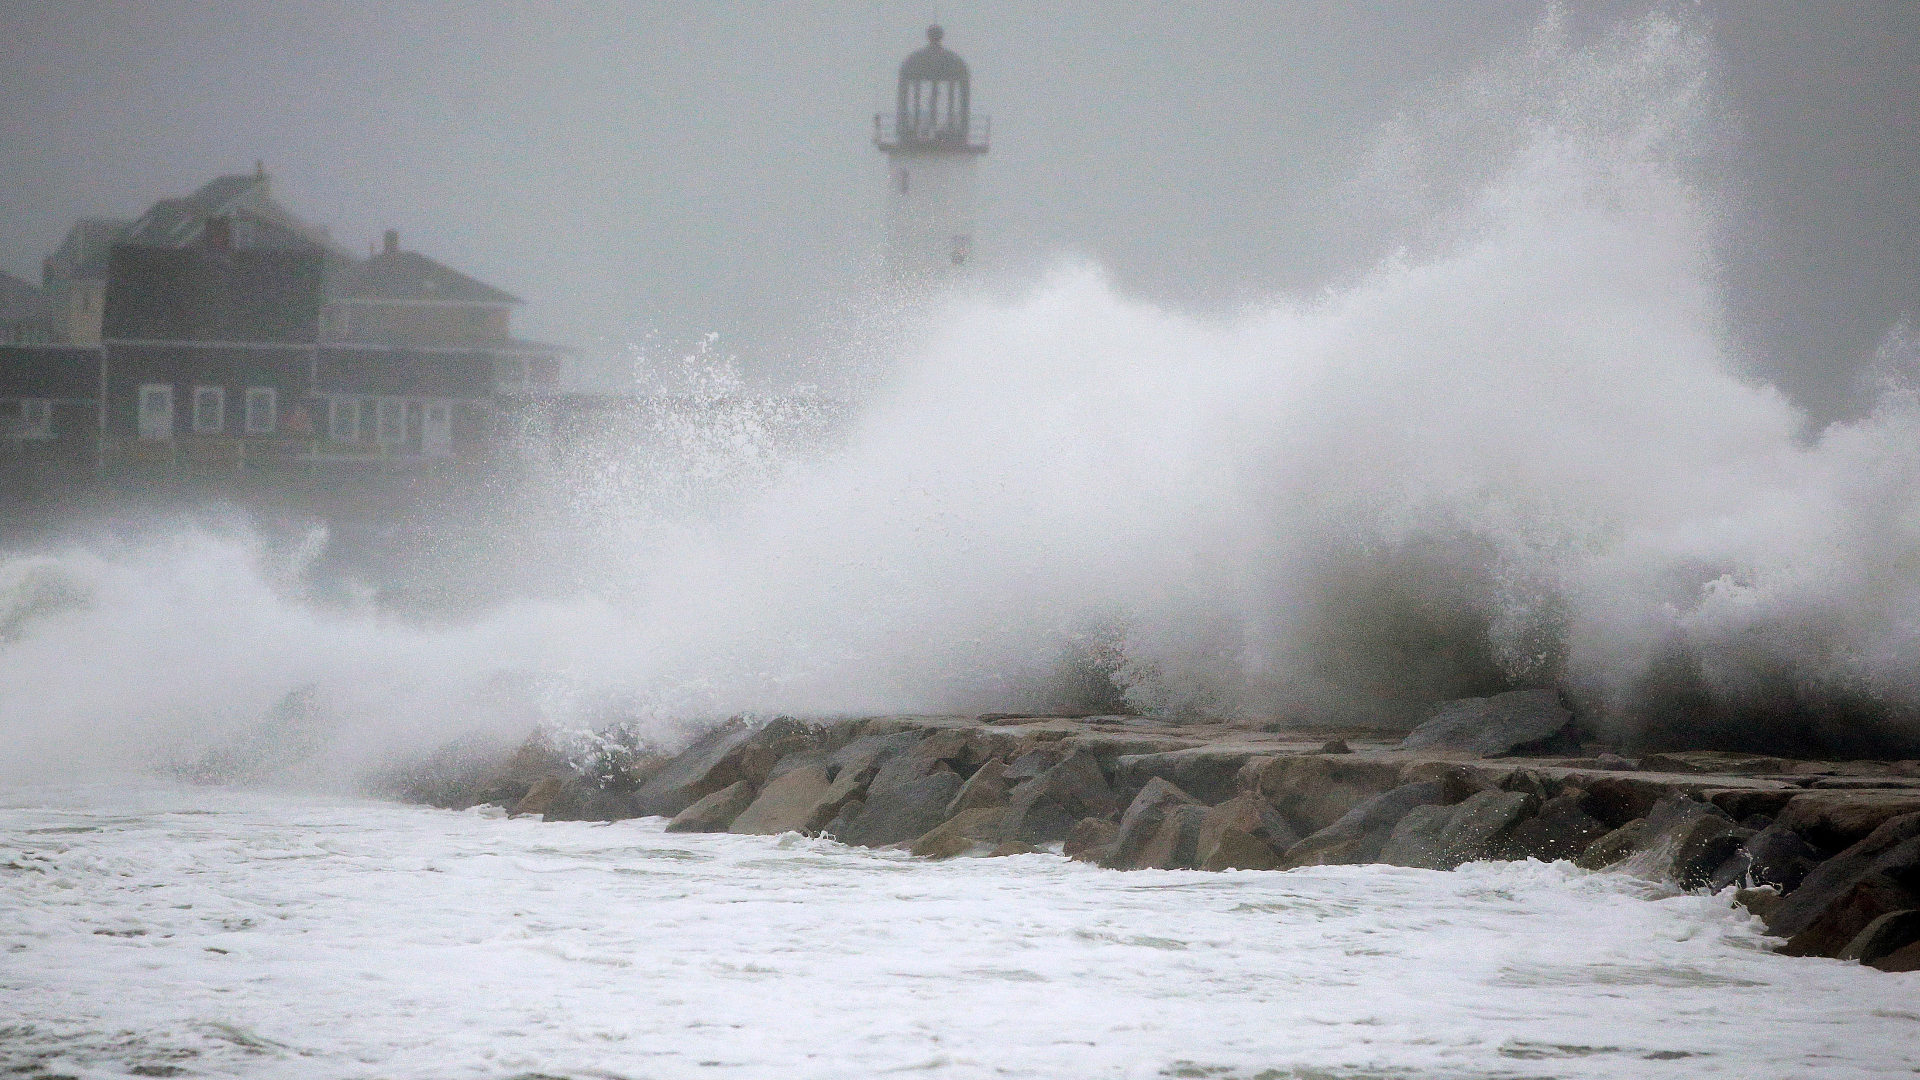 Wind Gusts Topped 93 Mph In Nor Easter Boston Storm Surge Falls Short Of Record The Washington Post